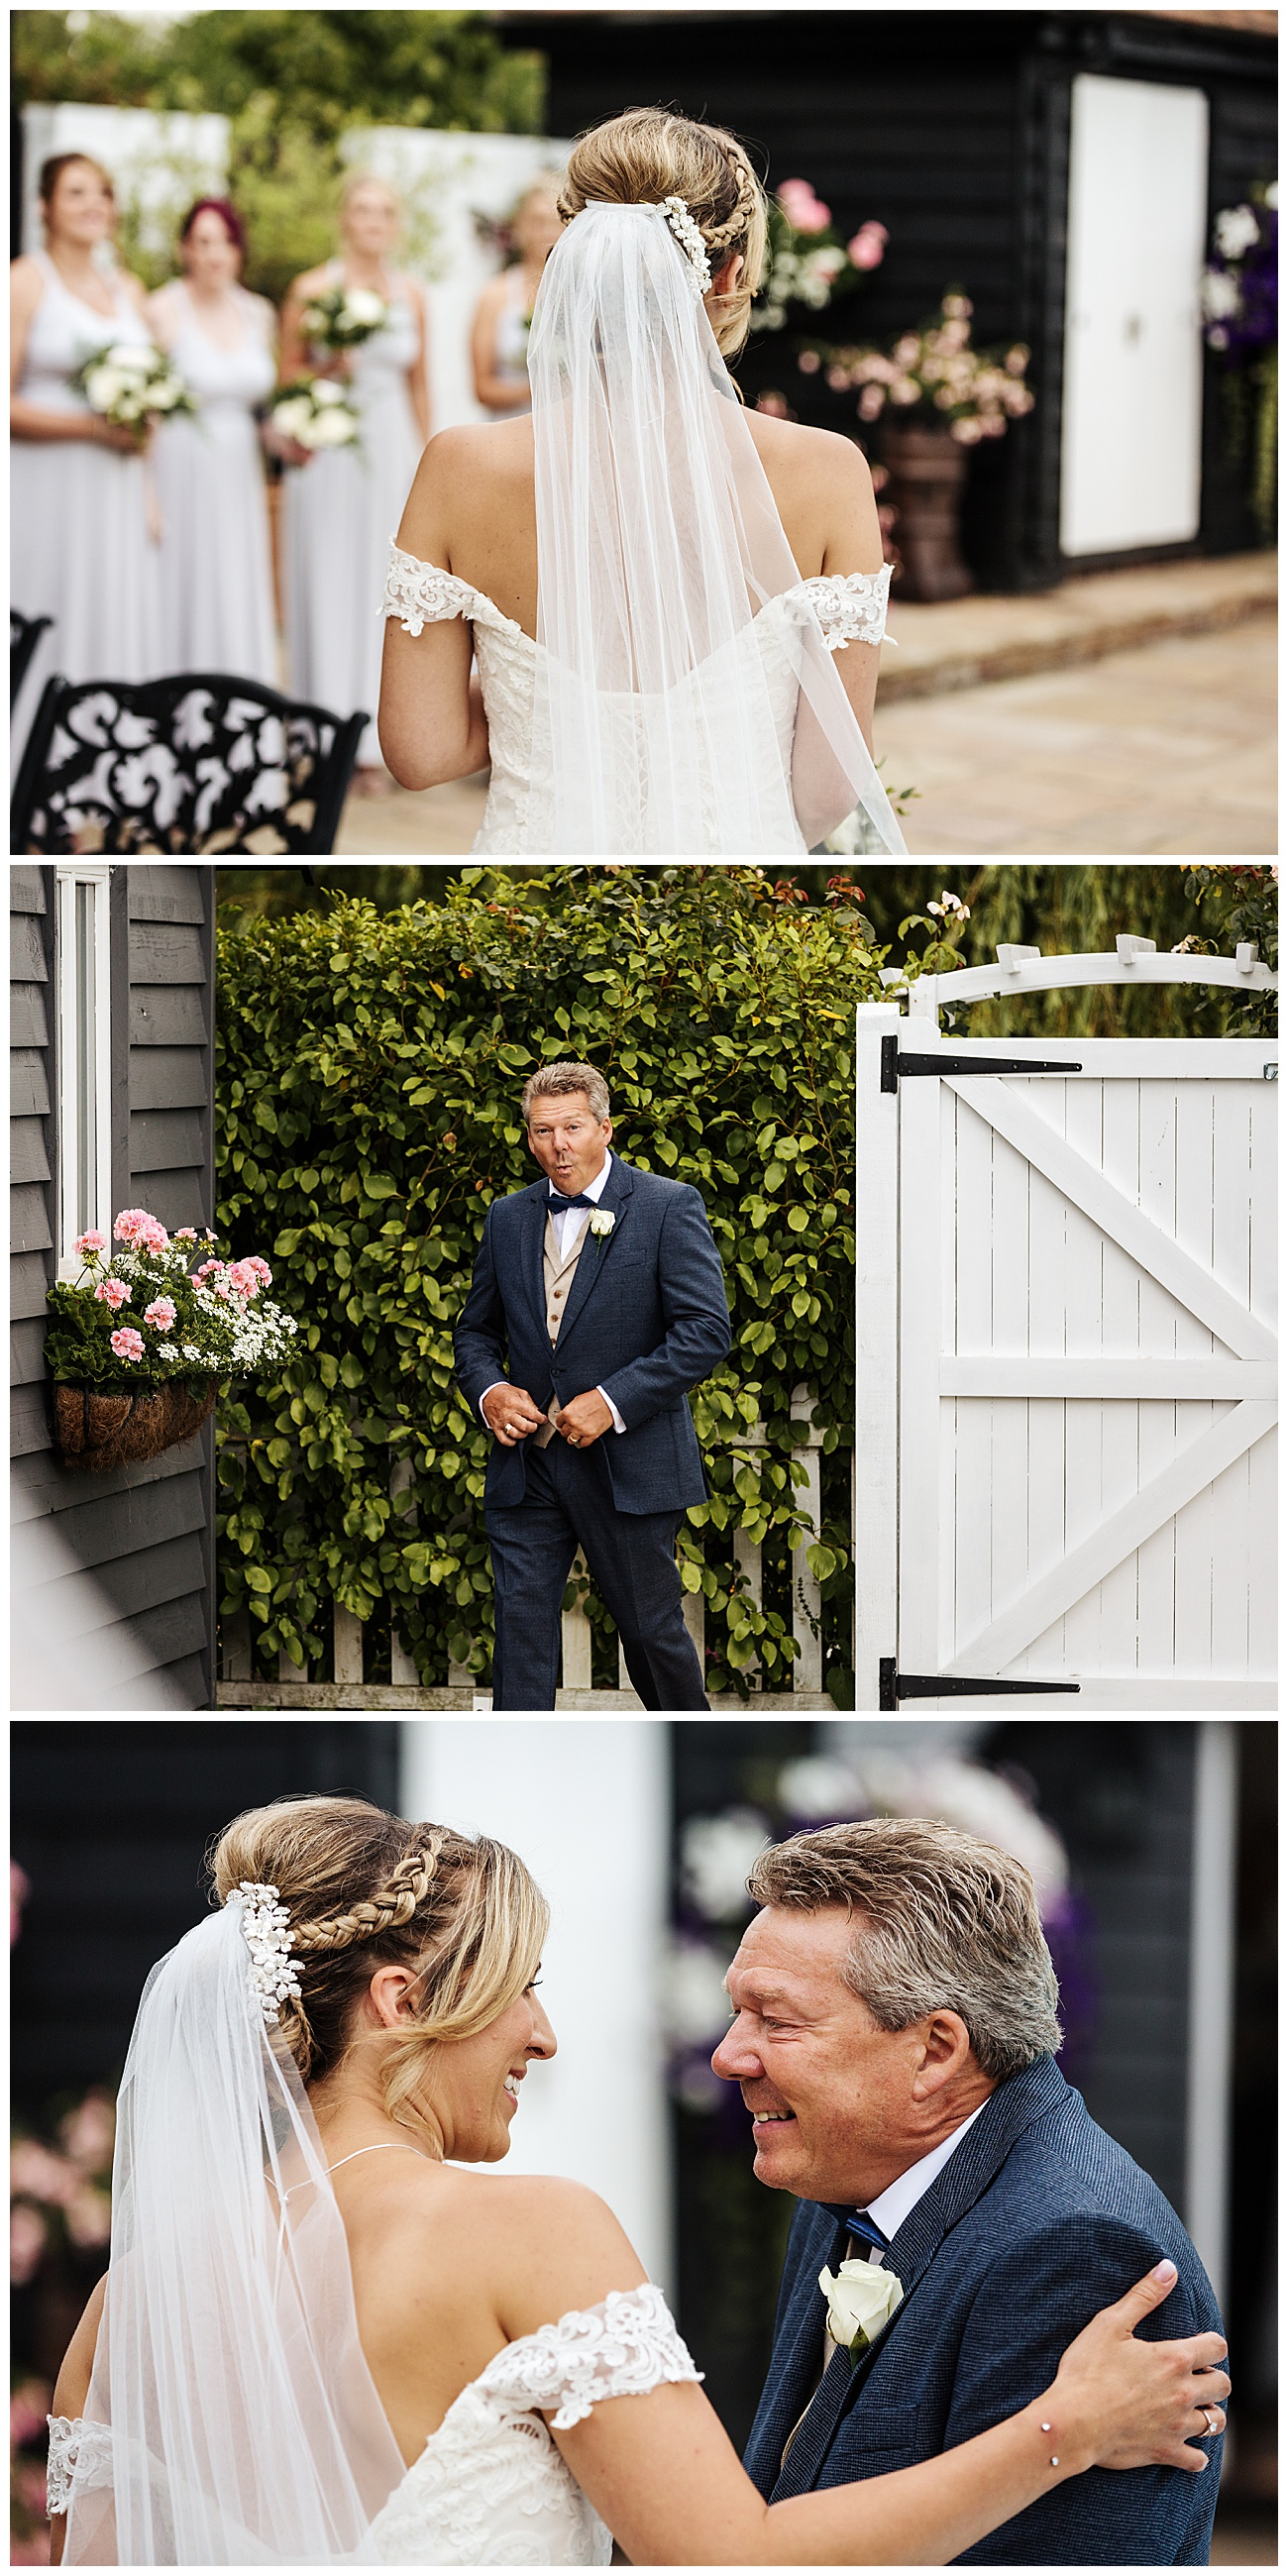 The brides dad sees her for the first time as he enters the bridal cottage smiling